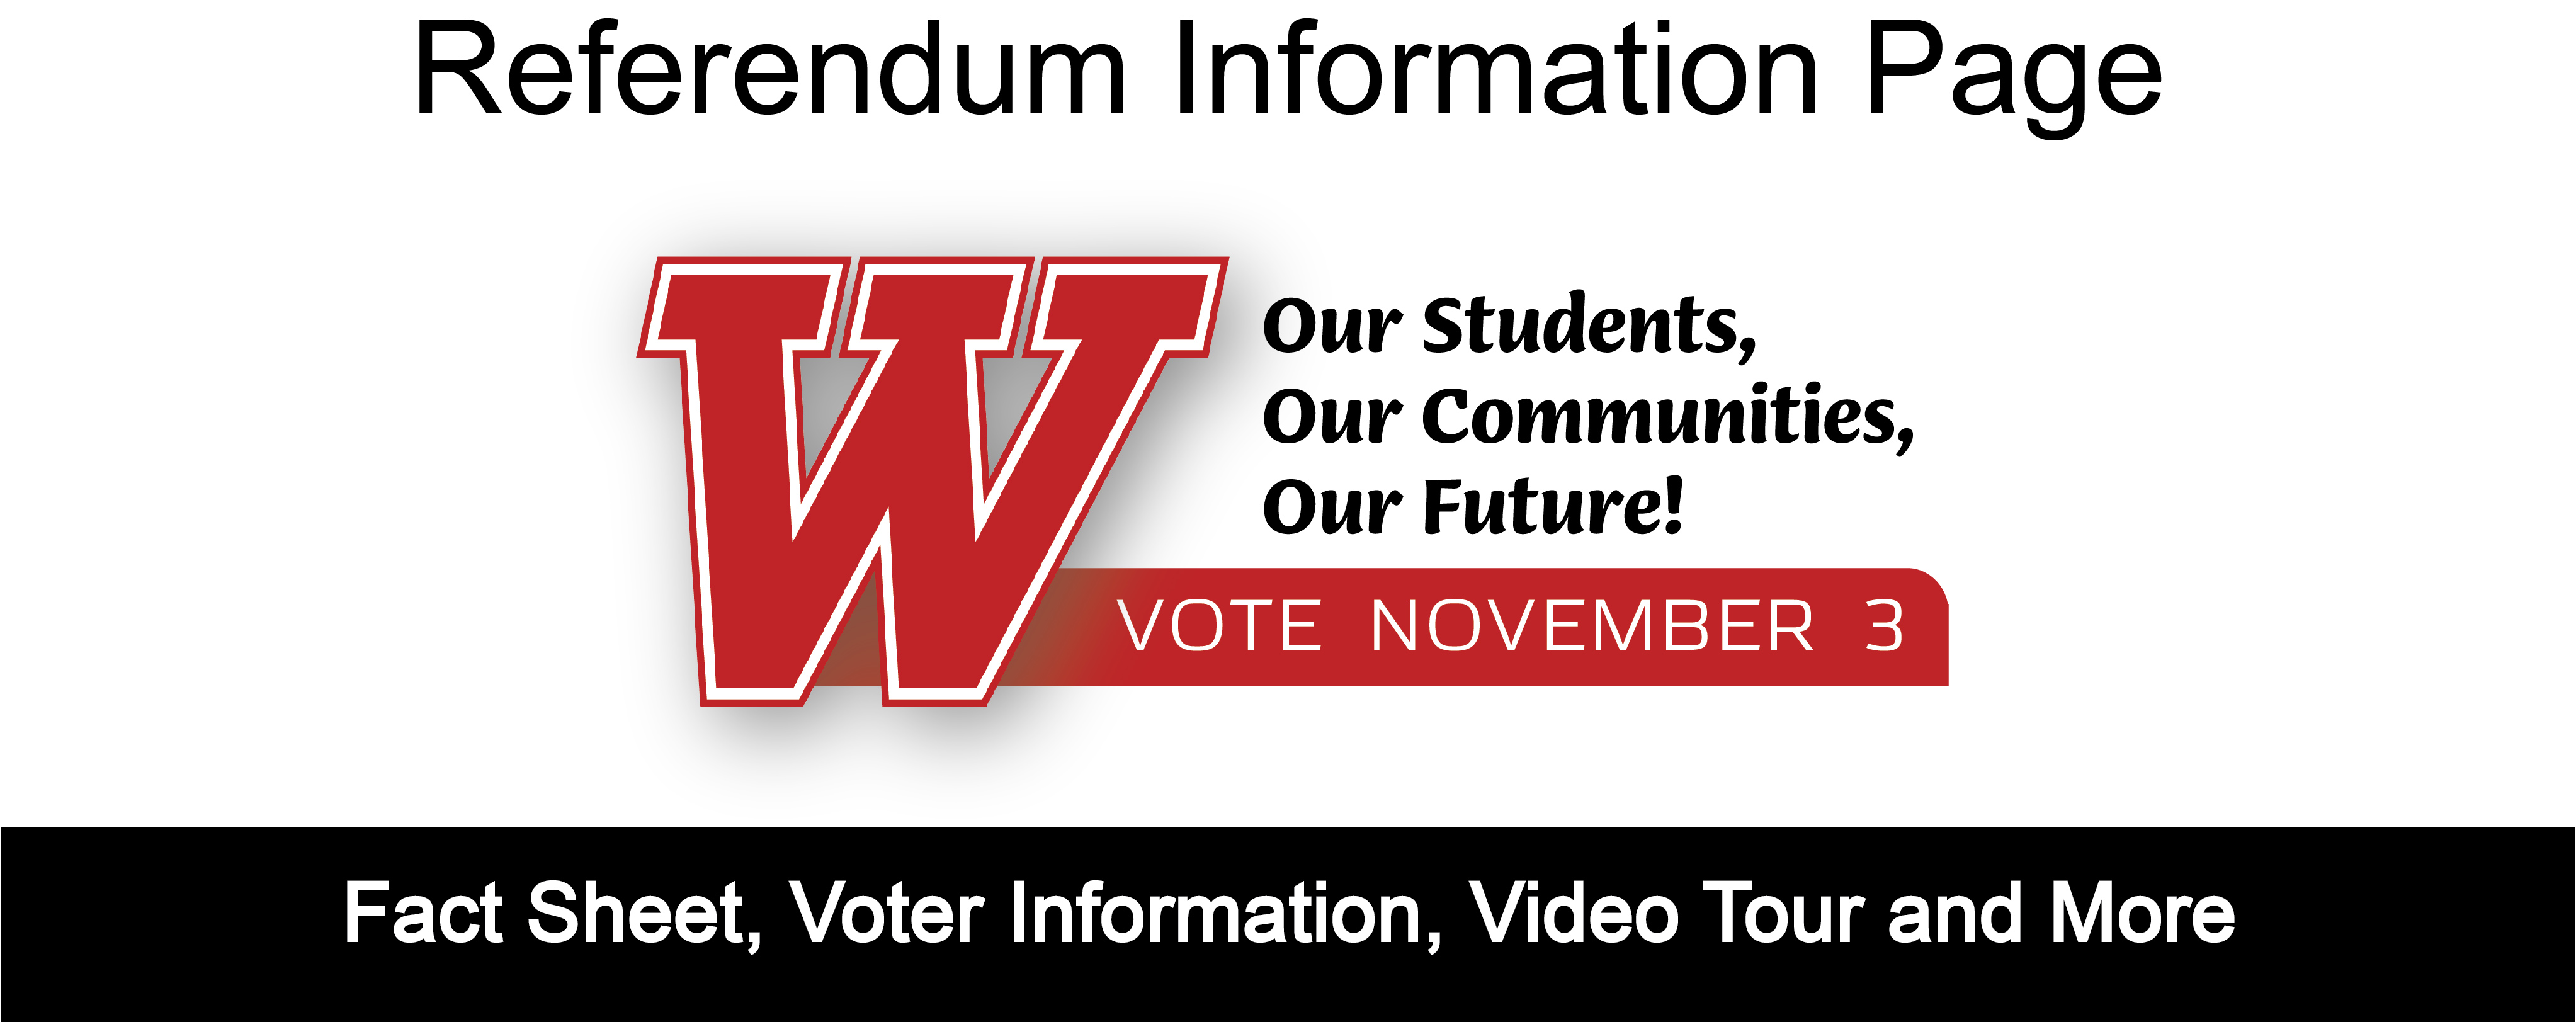 Referendum Information Graphic